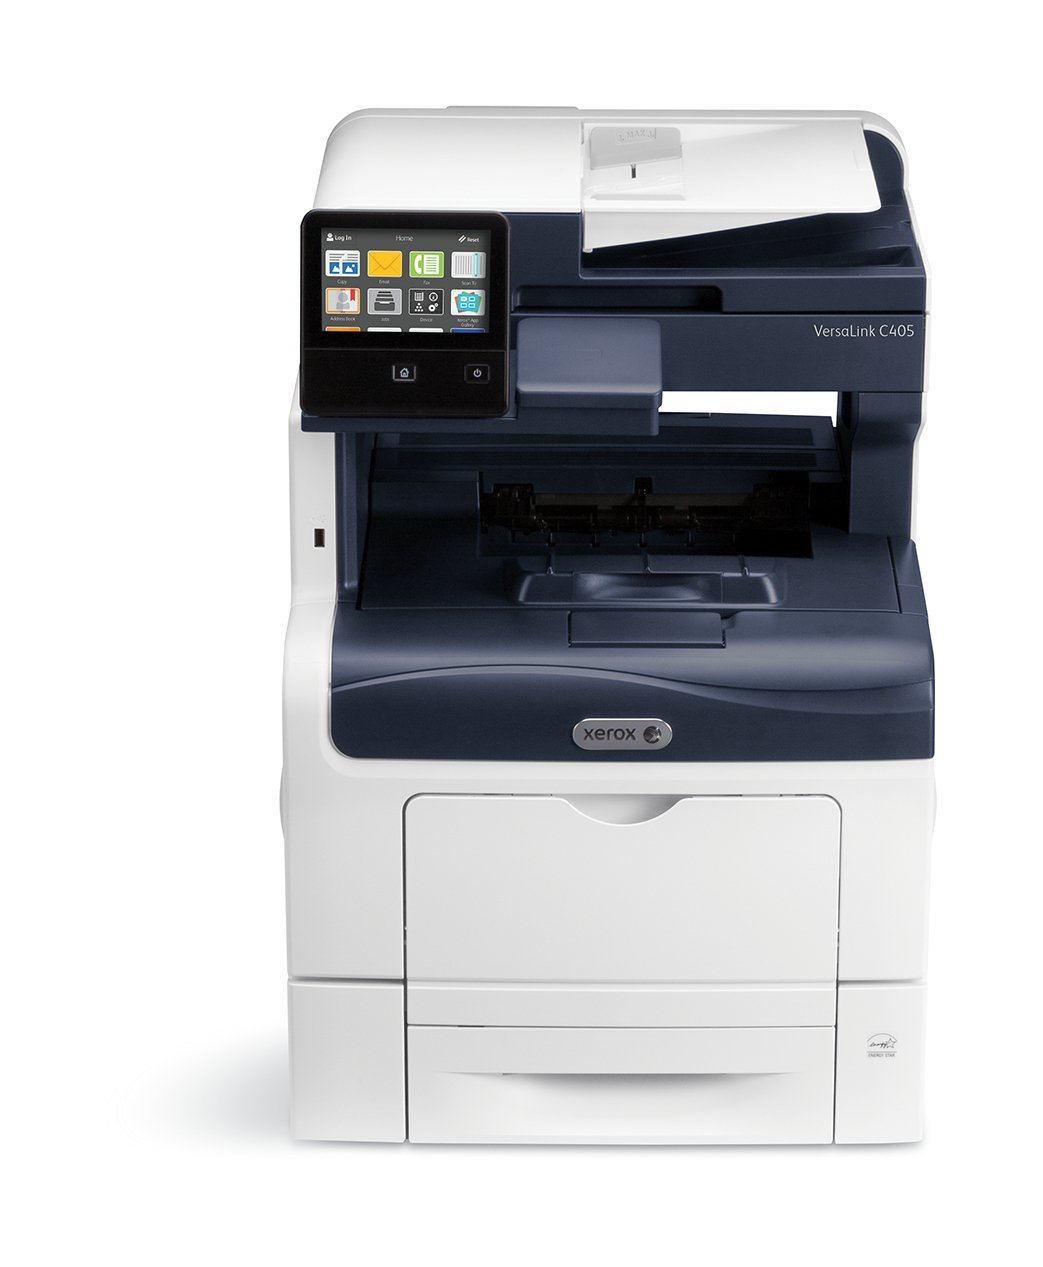 Xerox VersalLink C405DN MFP color laser printer LAN NFC USB